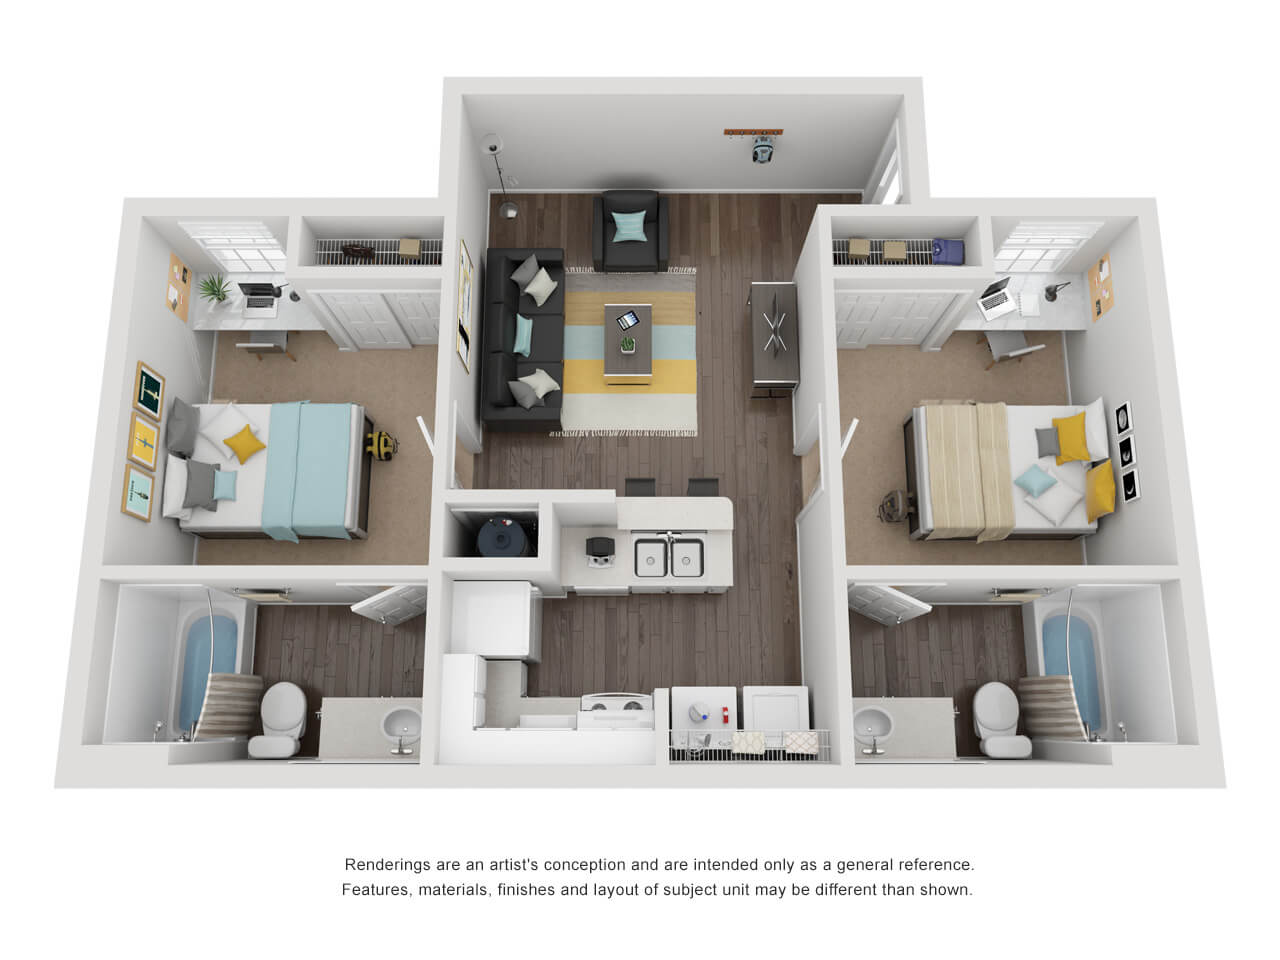 2 bedroom 2 bathroom layout with living and kitchen in the middle and bedrooms with bathrooms on the left and right..